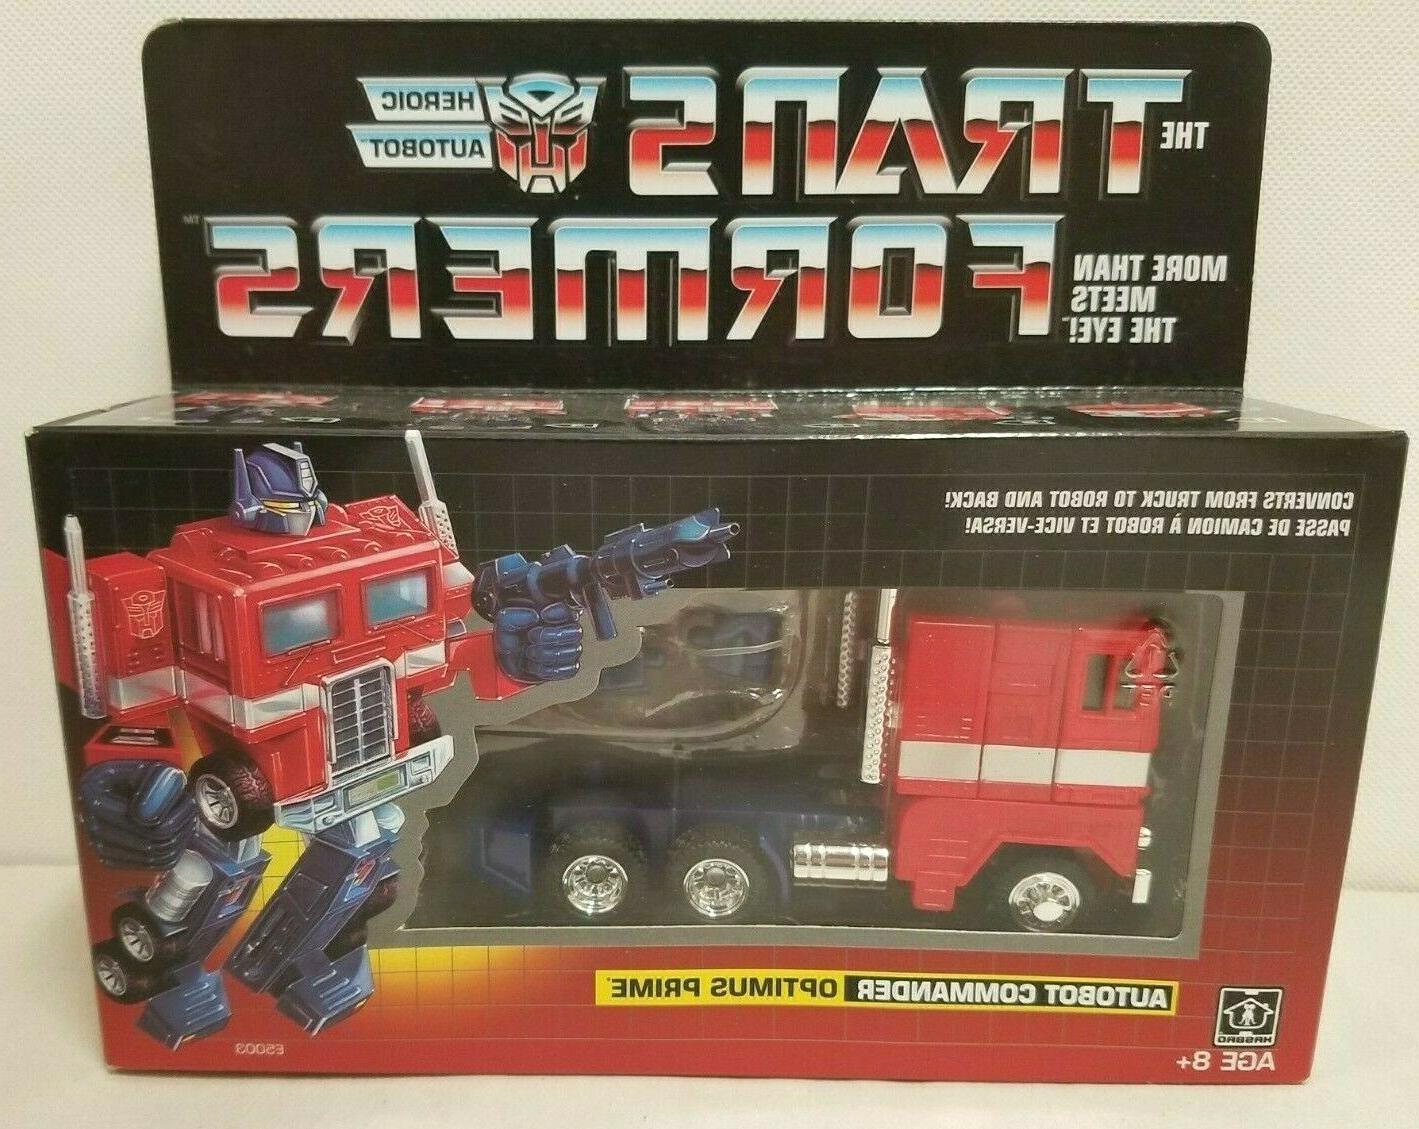 Transformers Autobot Optimus Prime in package